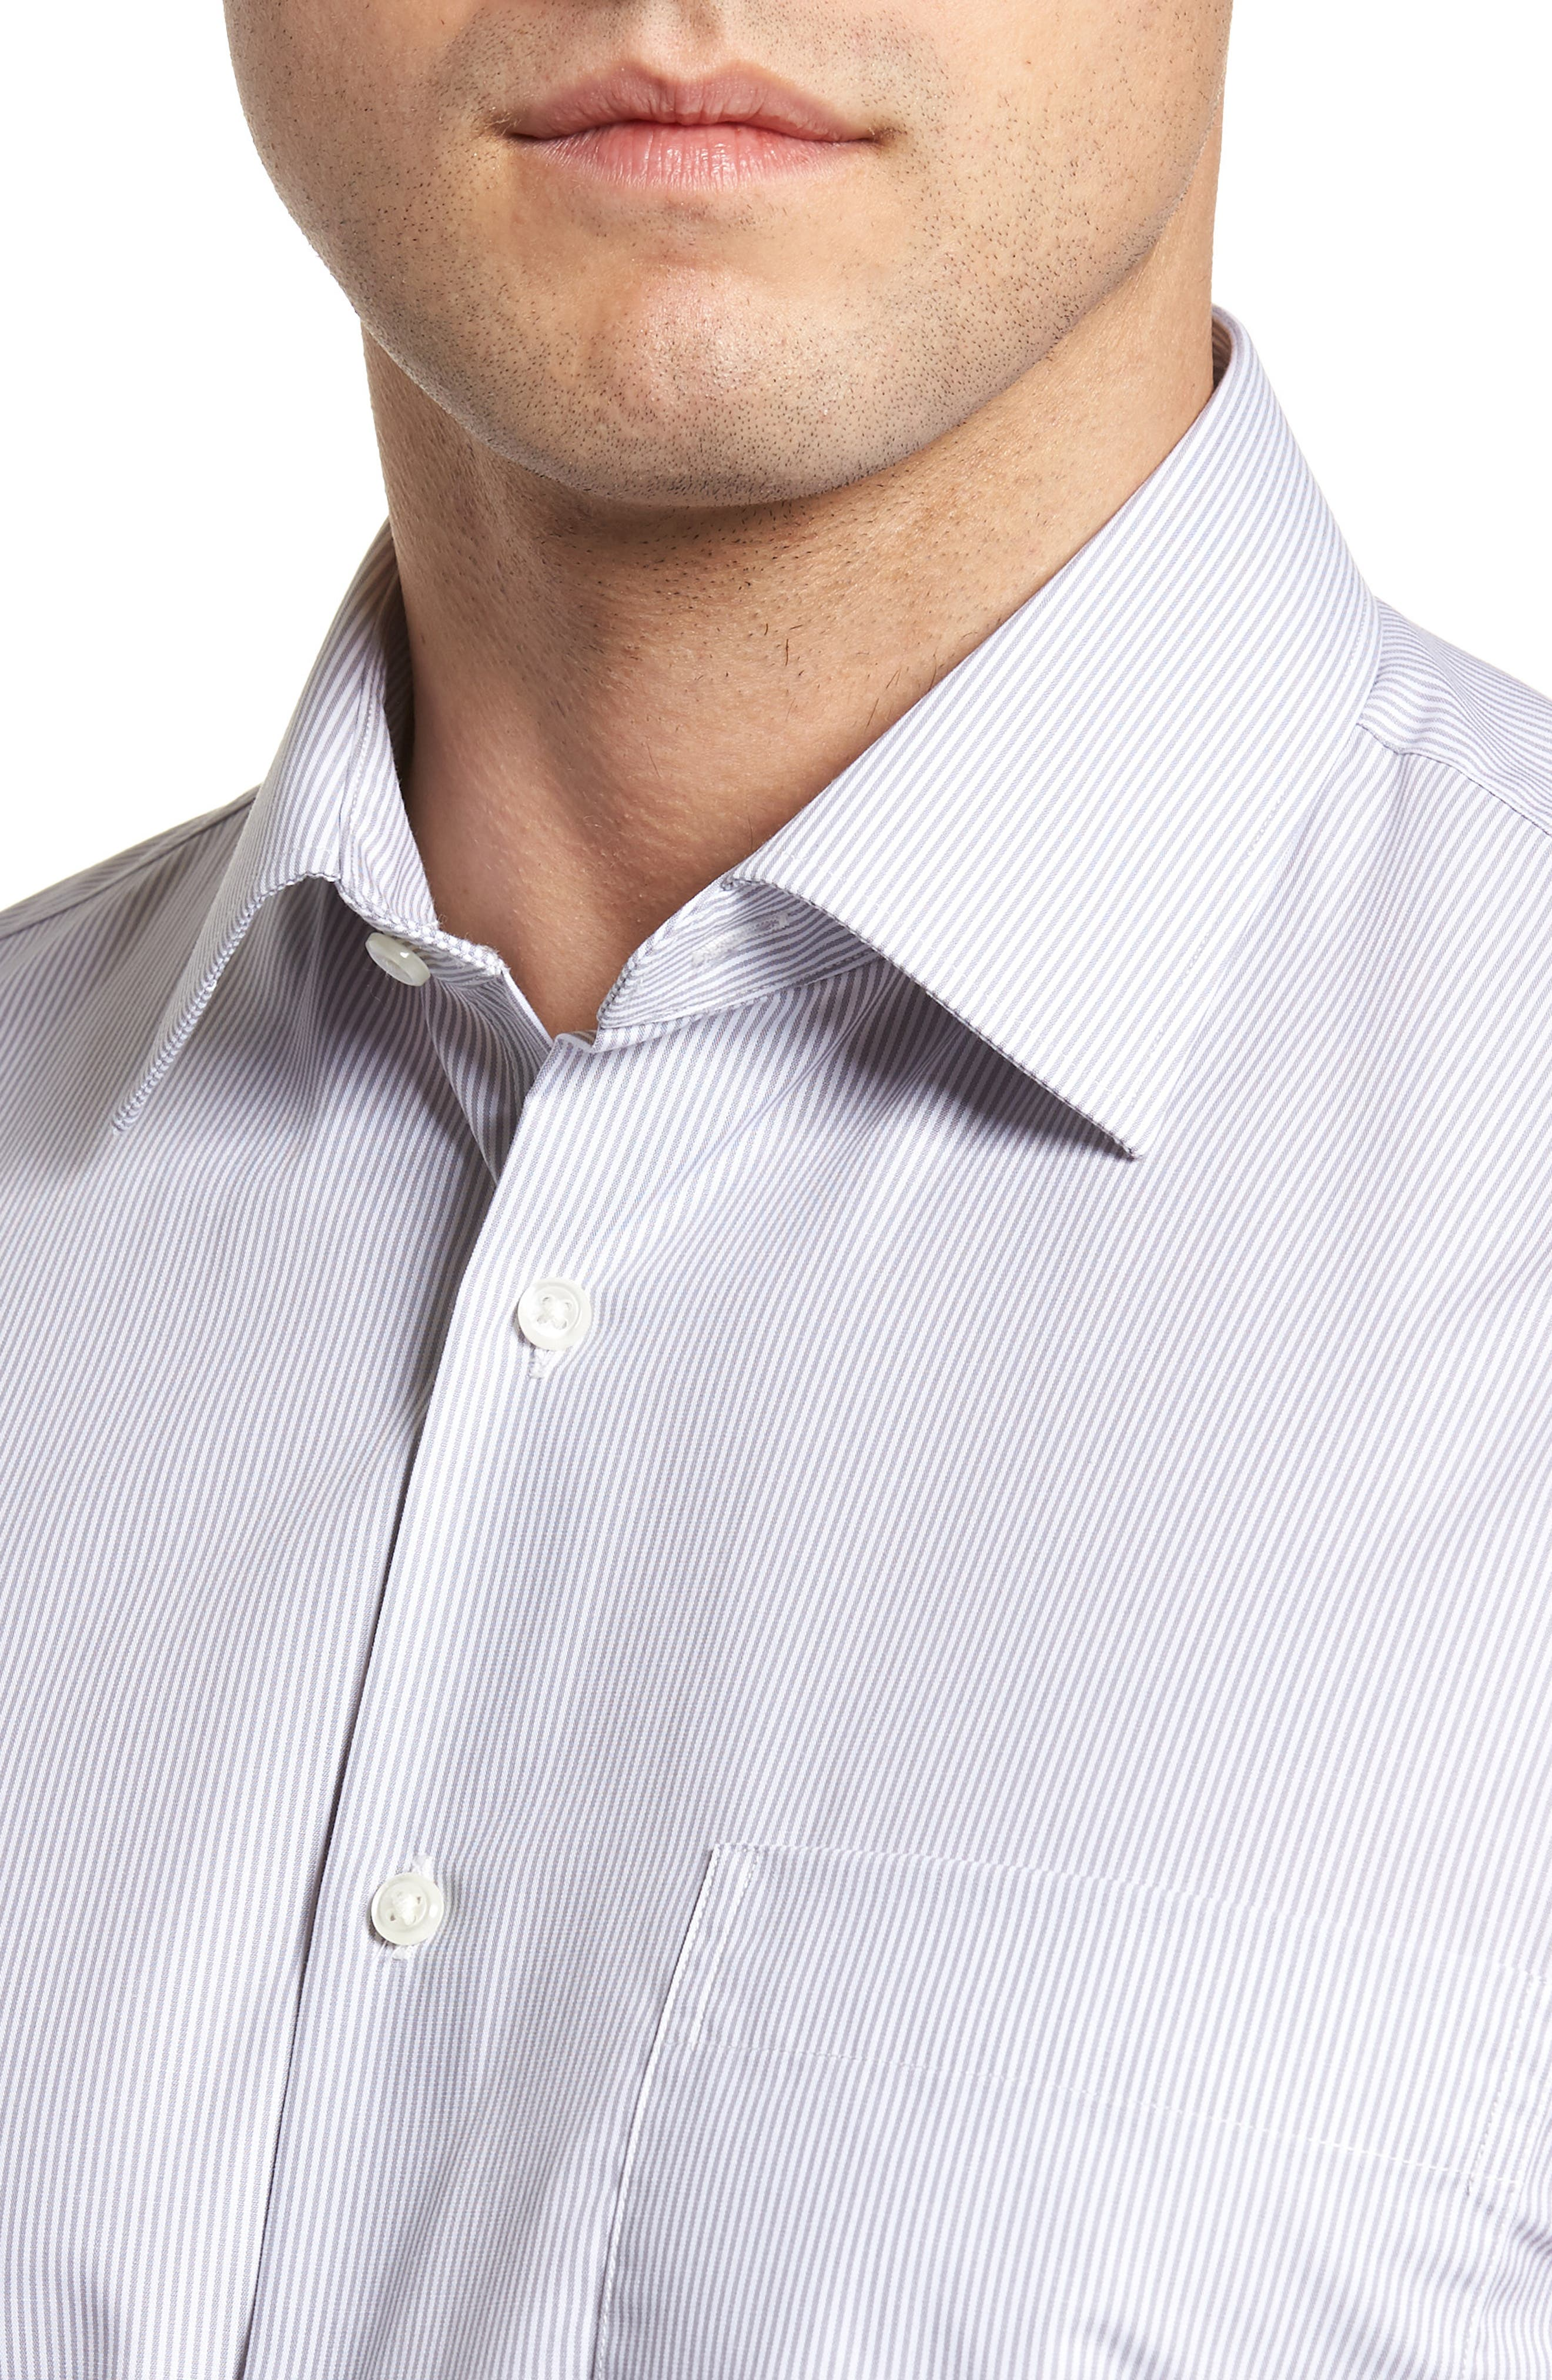 Classic Fit Non-Iron Stripe Dress Shirt,                             Alternate thumbnail 2, color,                             Grey Micro